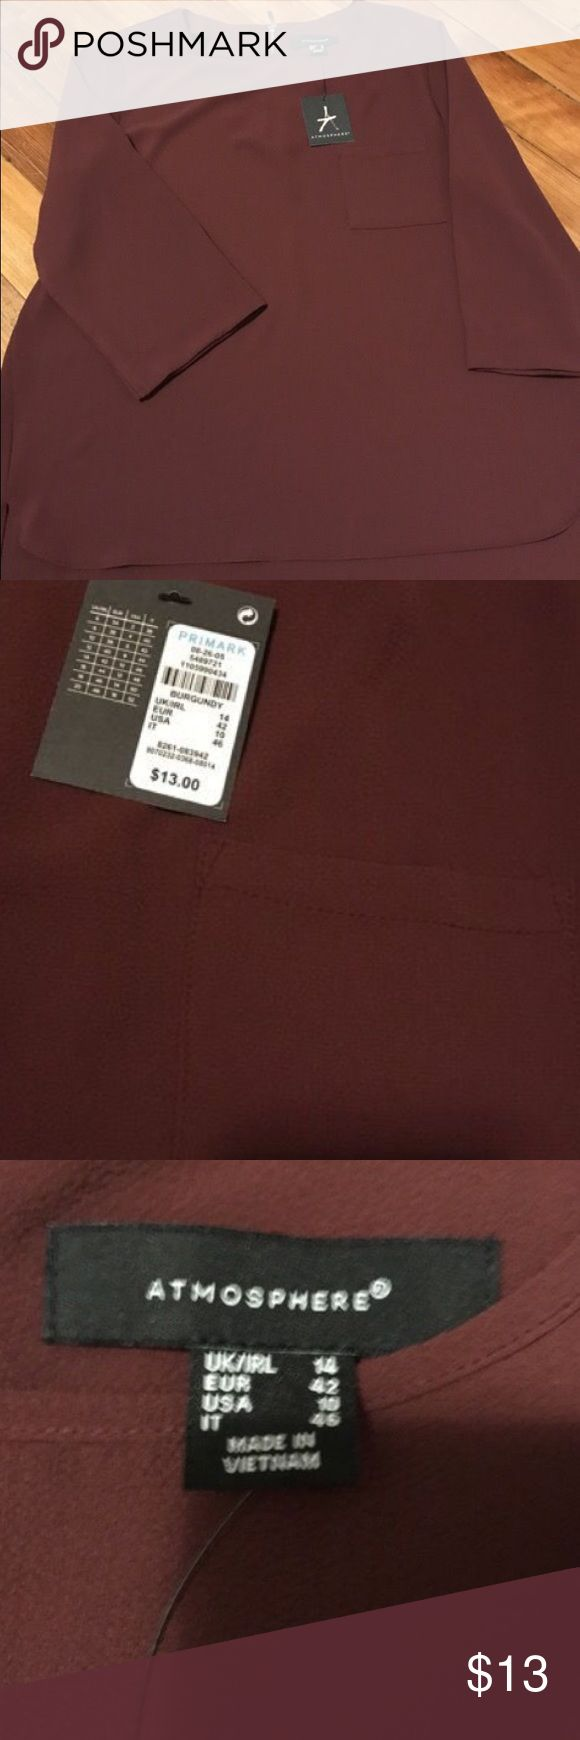 Women's US size 10 Burgundy sheer type shirt Brand new, still with tags. Never worn. Women's Burgundy sheer feeling shirt but not see through. US size 10. Fits like a medium Primark Tops Blouses